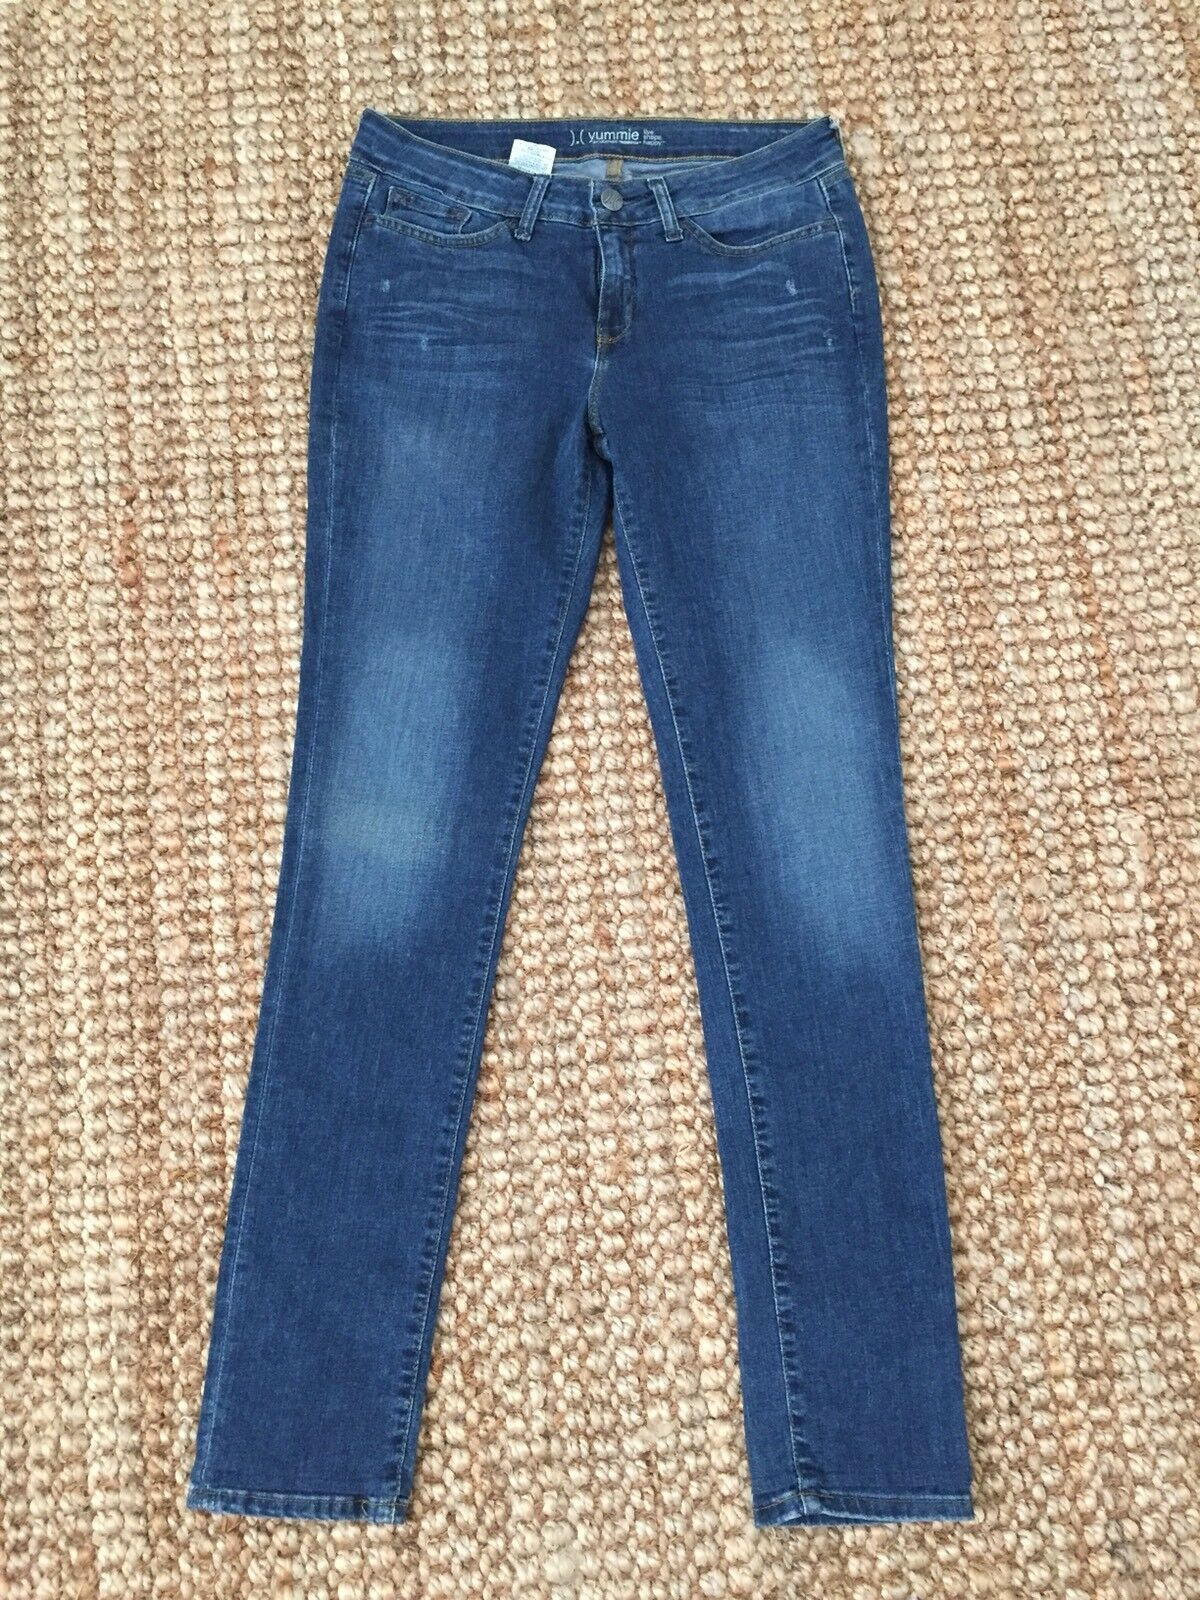 Yummie by Heather Thomson Medium Wash Mid Rise Shaping Skinny Jeans Sz 30